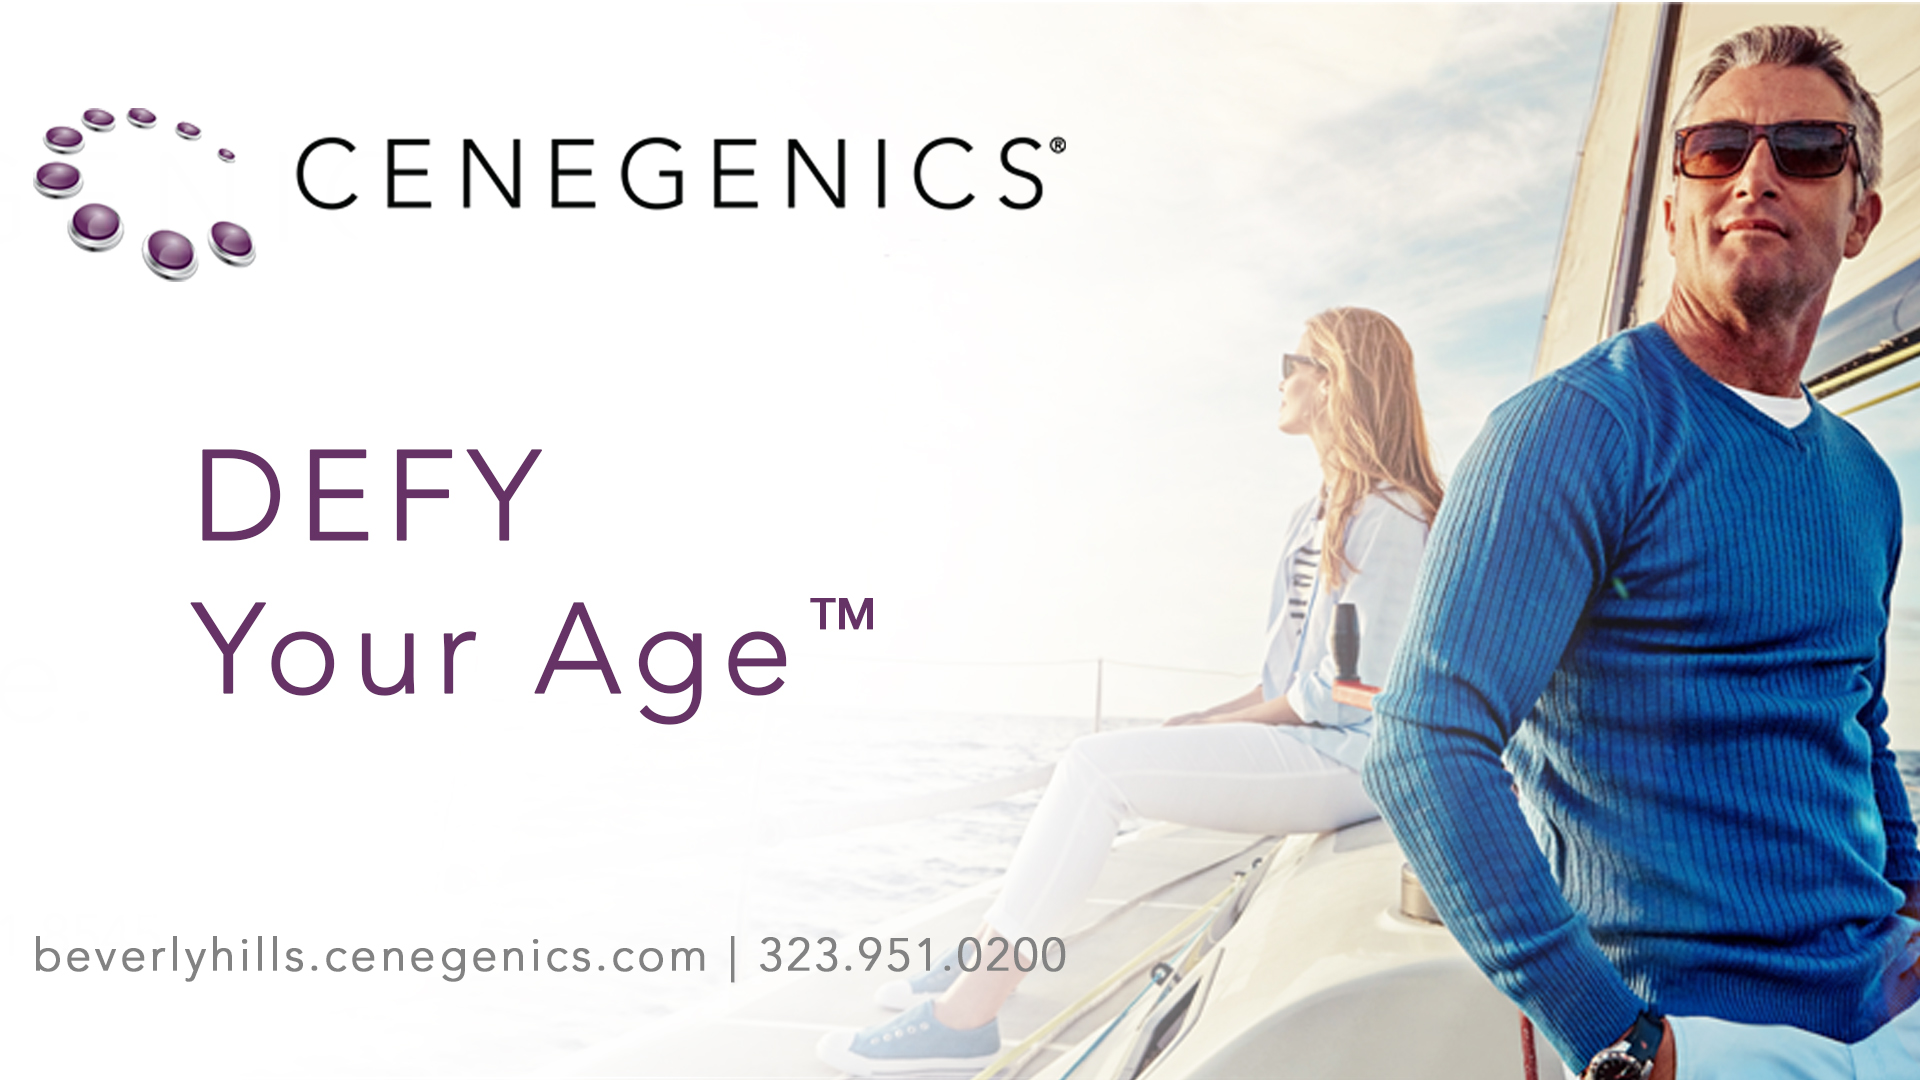 Cenegenics Beverly Hills reviews | Medical Centers at 8383 Wilshire Blvd - Beverly Hills CA